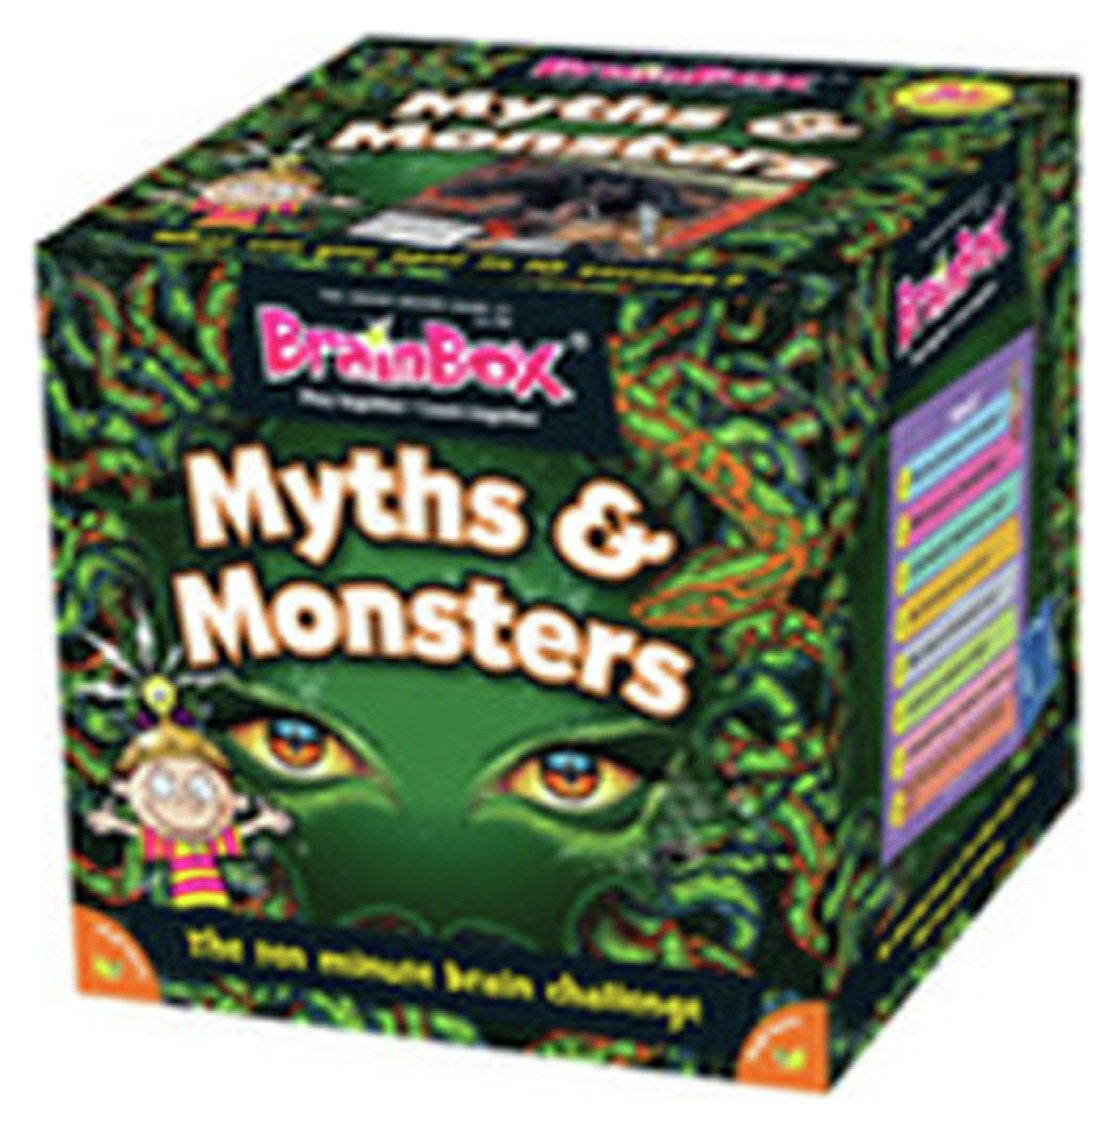 Image of Brainbox Myths and Monsters Game.